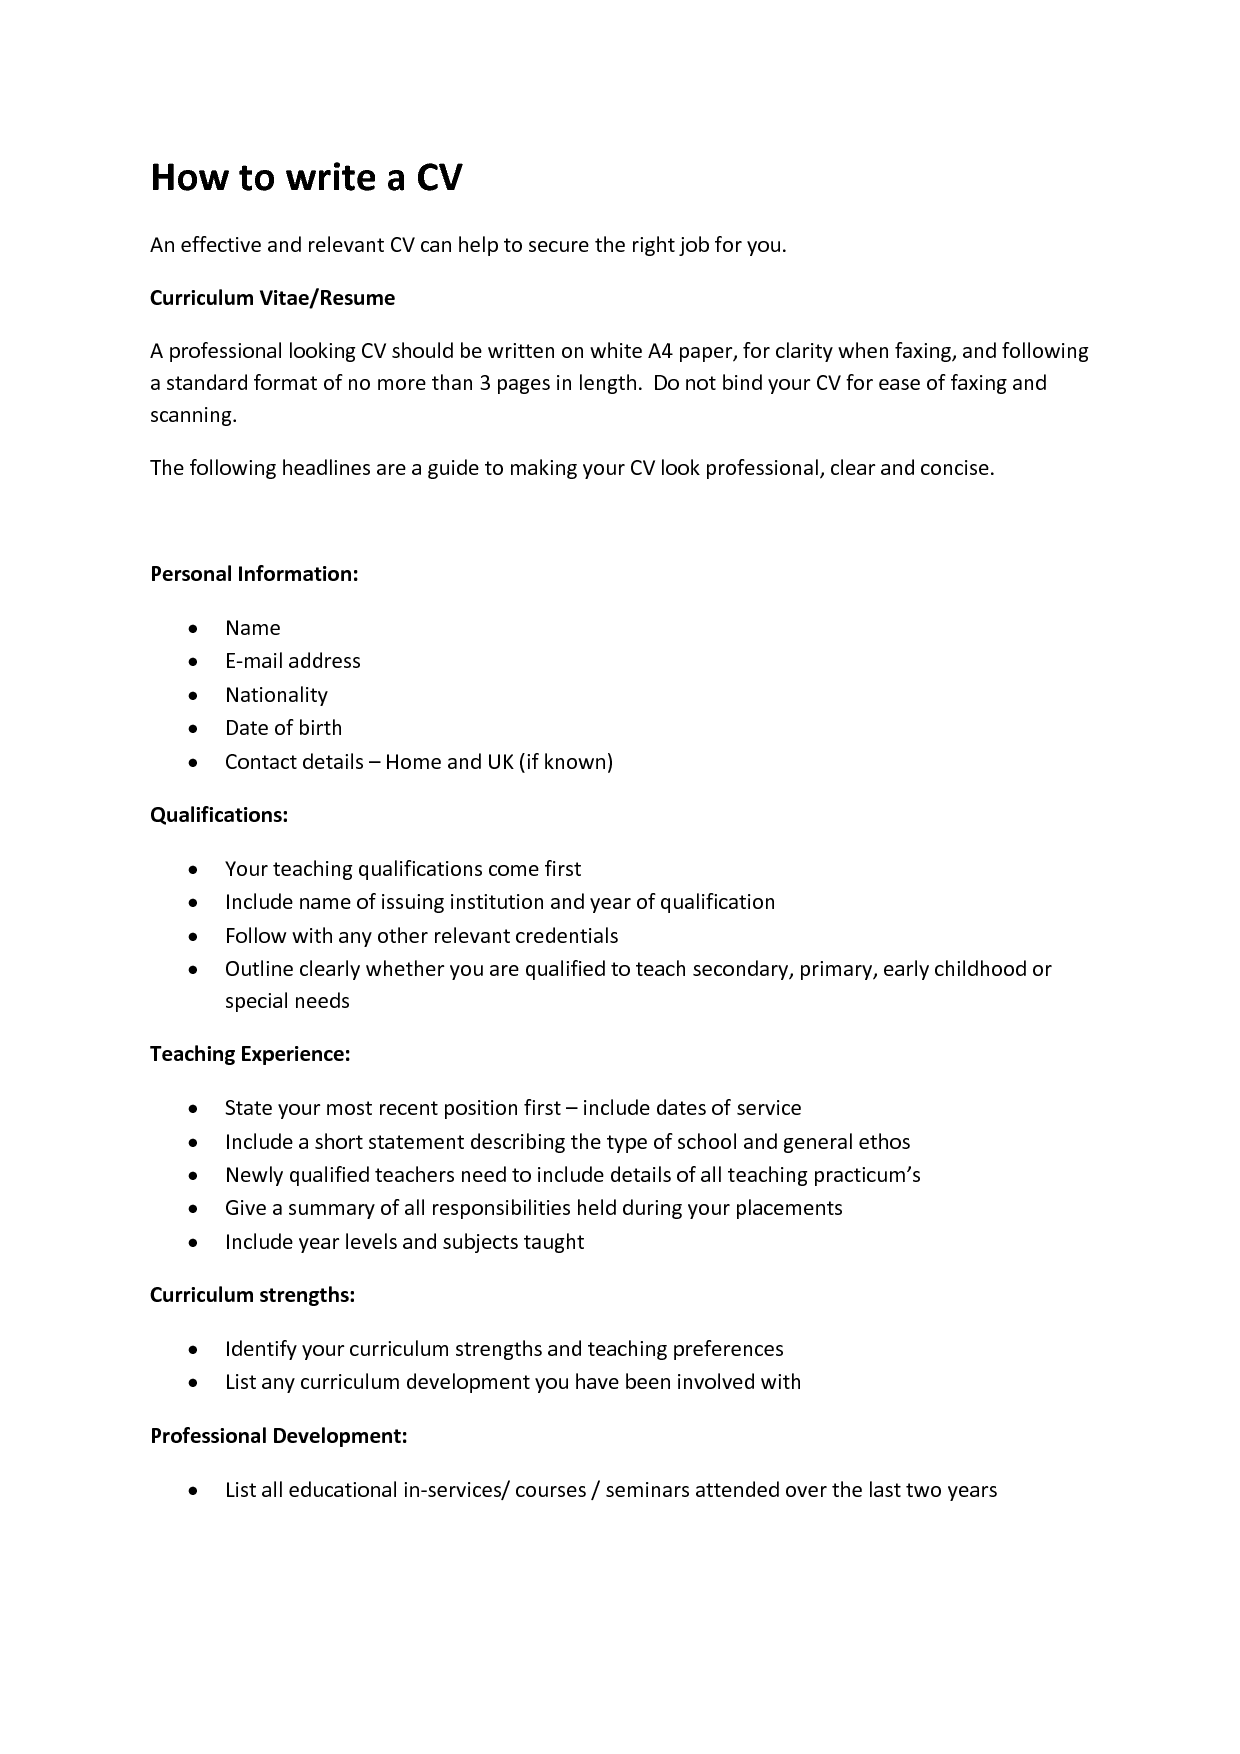 WRITING A CV Easy TemplatesWriting A Resume Cover Letter Examples  How To Write An Amazing Resume